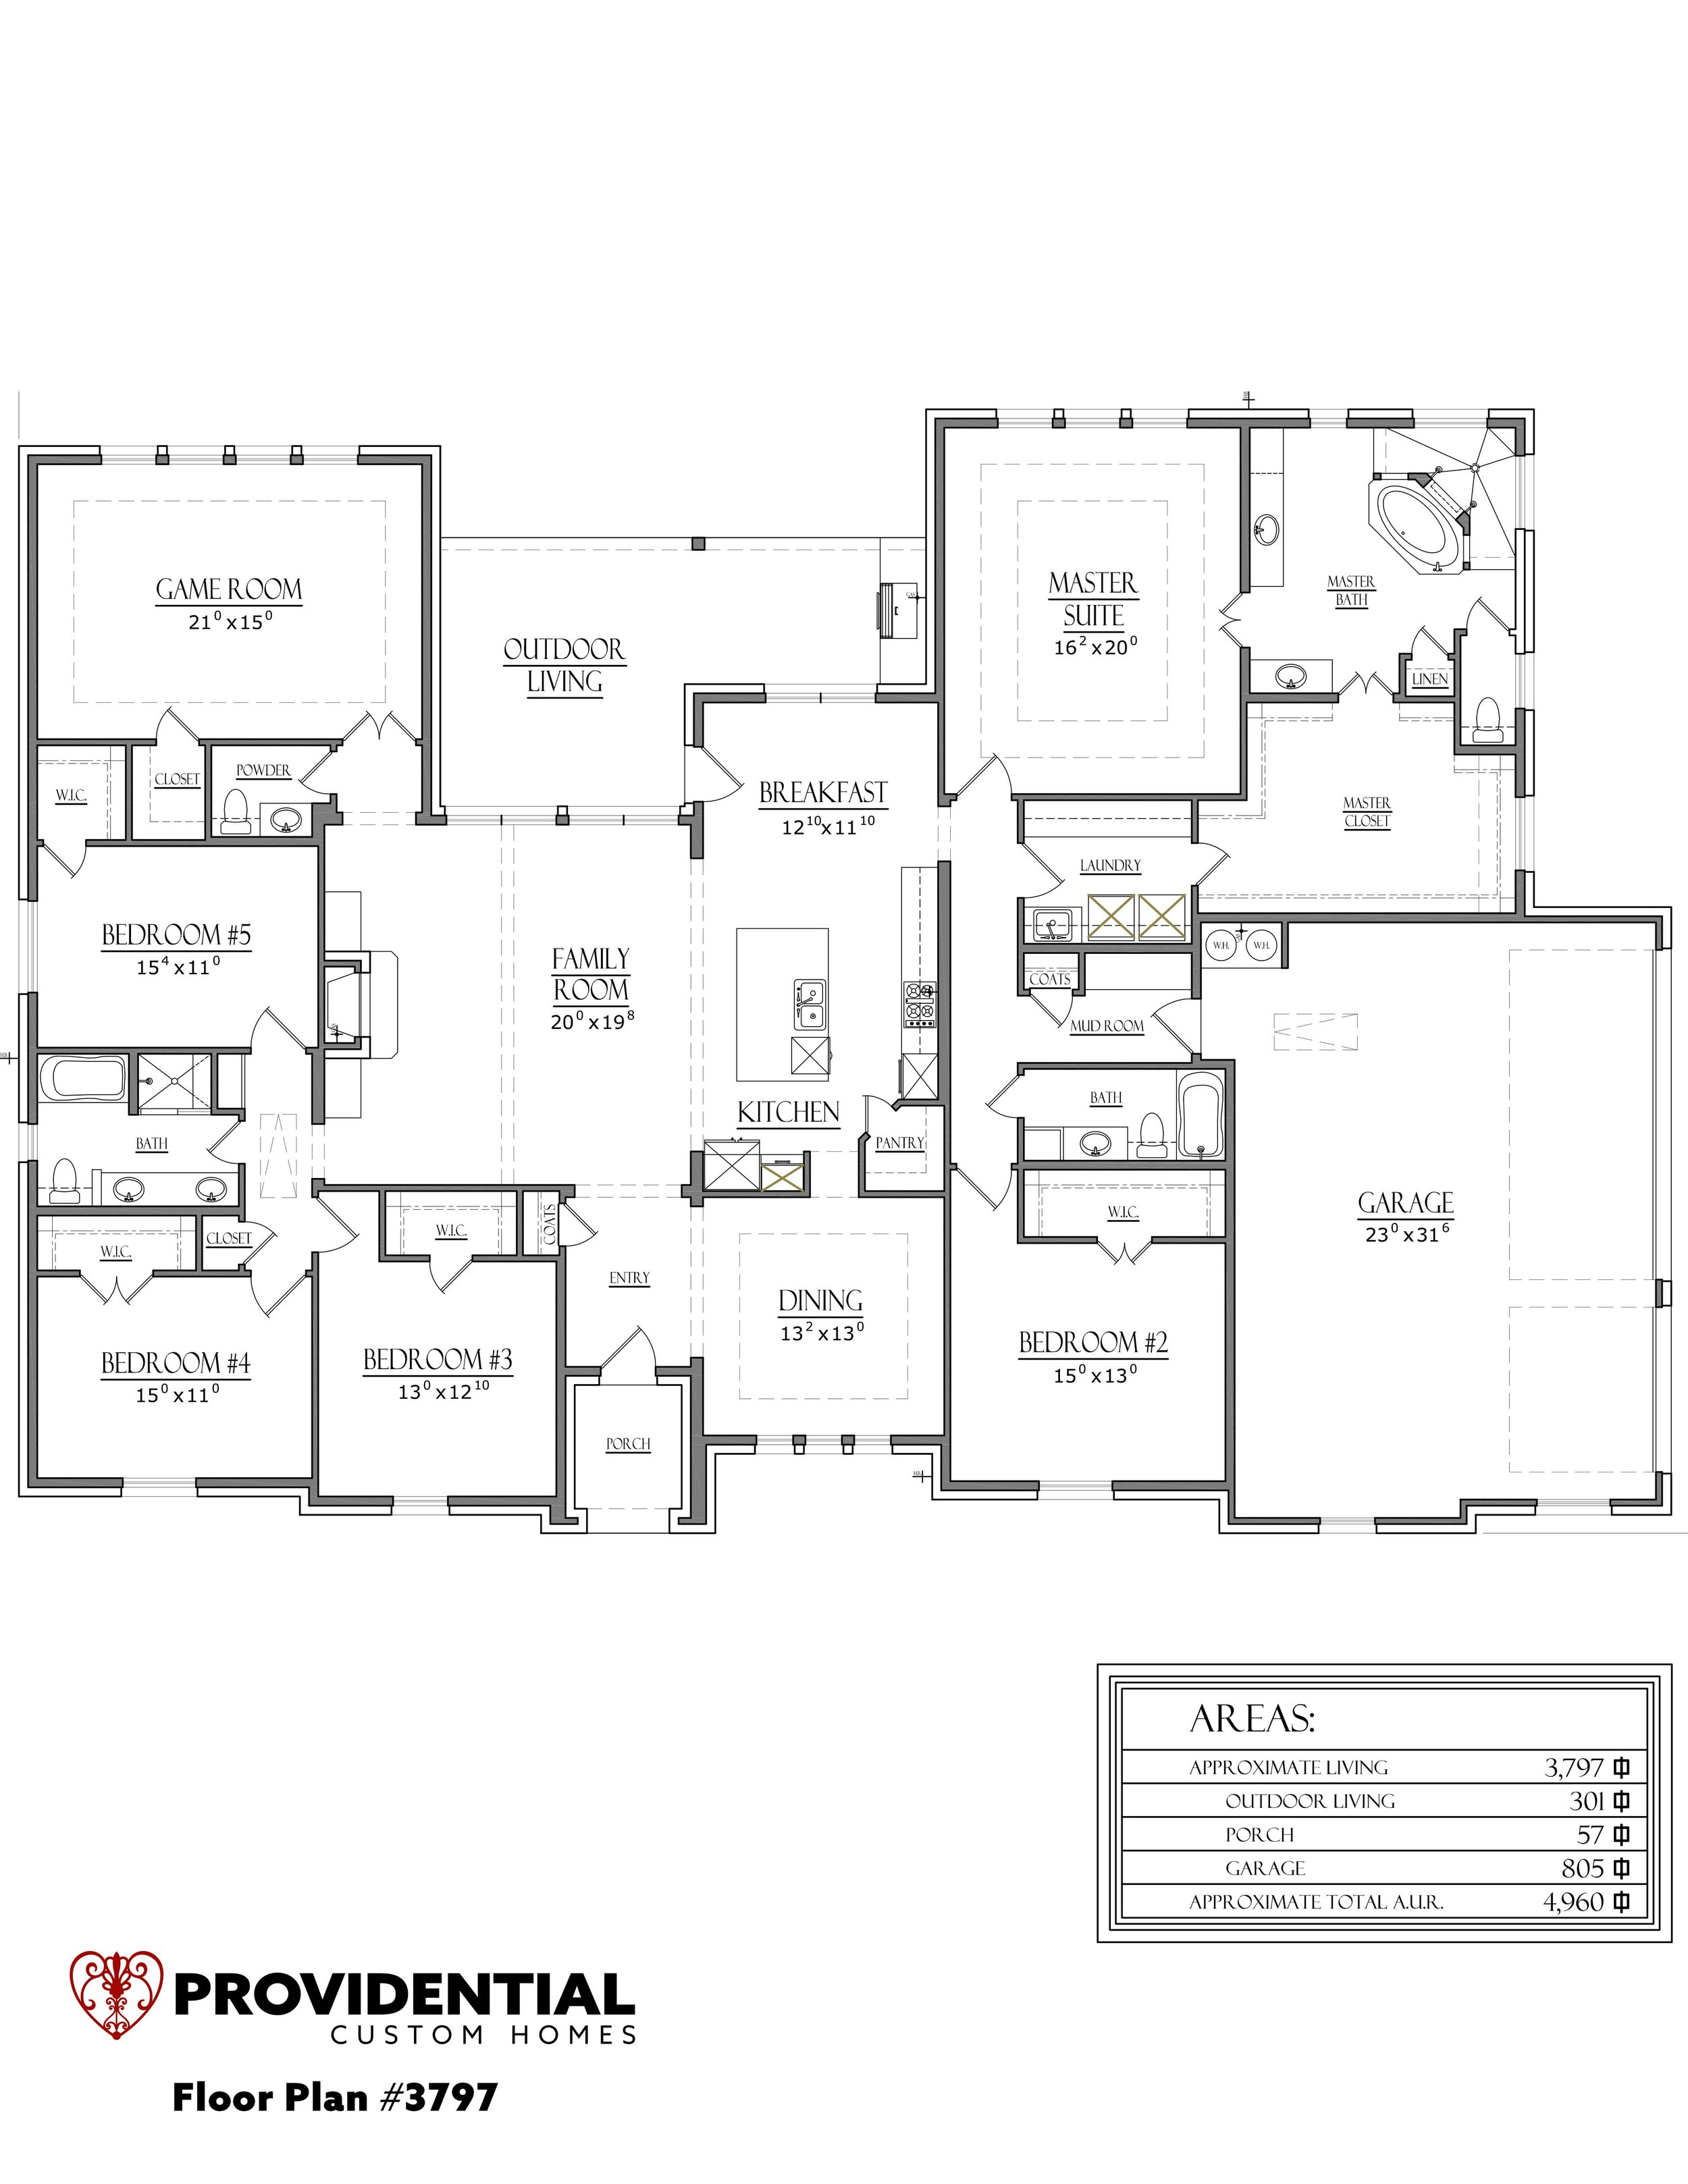 The FLOOR PLAN #3797.jpg